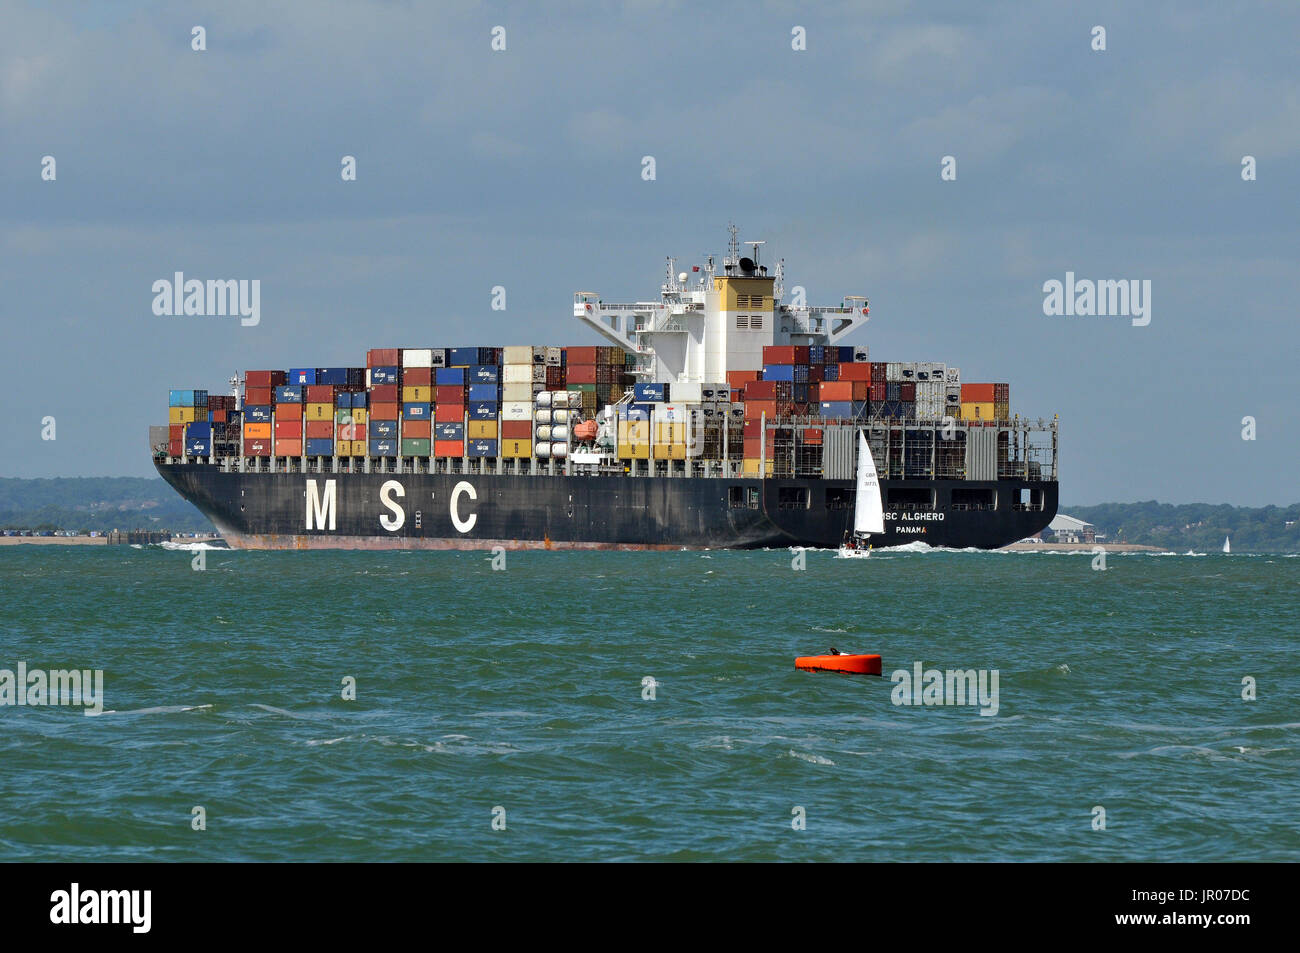 a large container ship entering Southampton port or harbour during cowes week close to some racing yachts off of the isle of wight on the sea solent - Stock Image